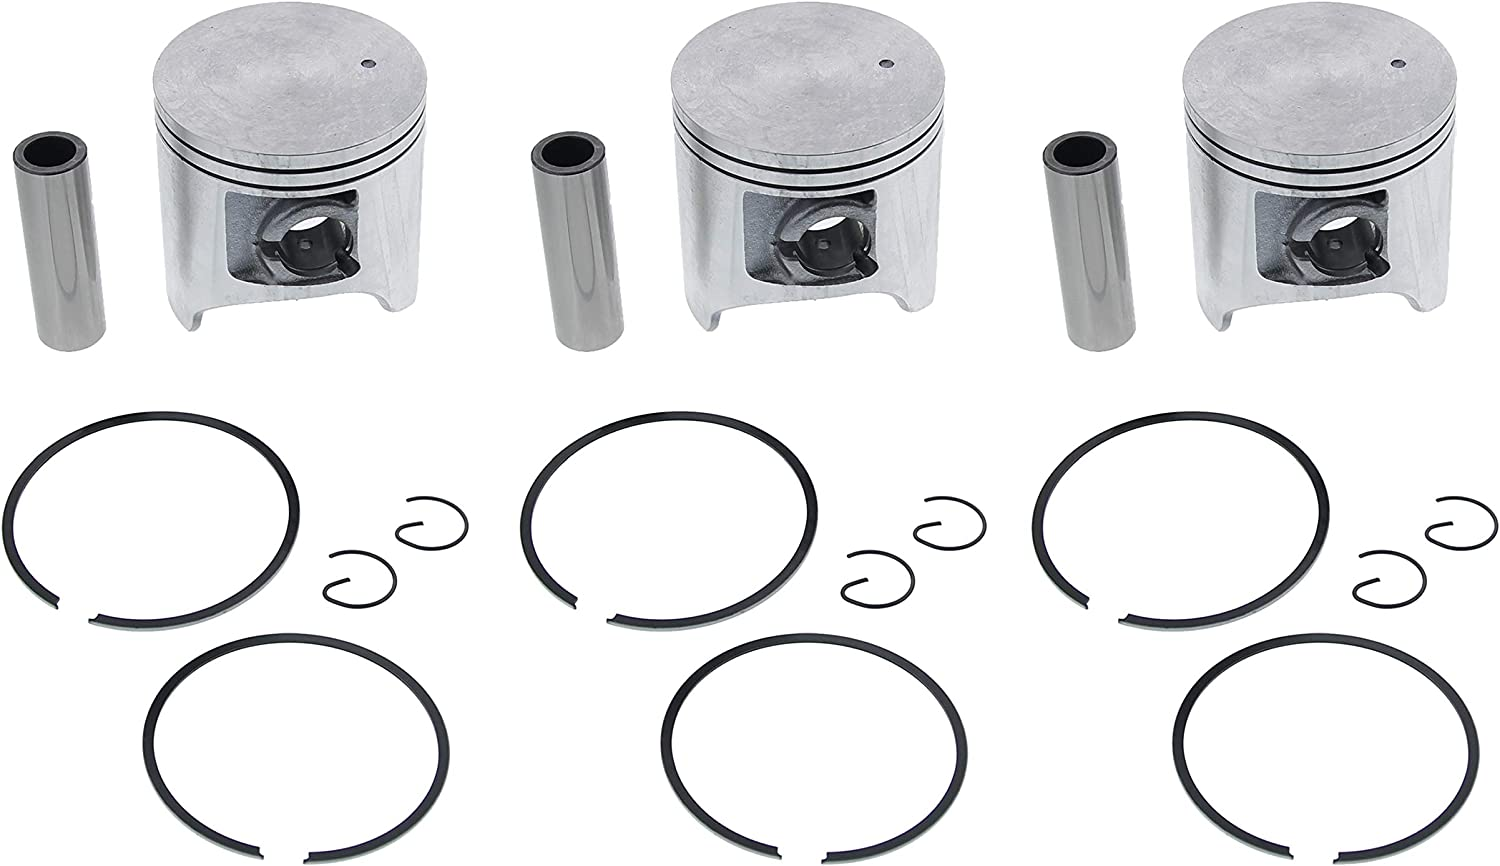 Piston Kit for Arctic Cat ZL 500 1998 1999 2000 Snowmobile by Race-Driven x2